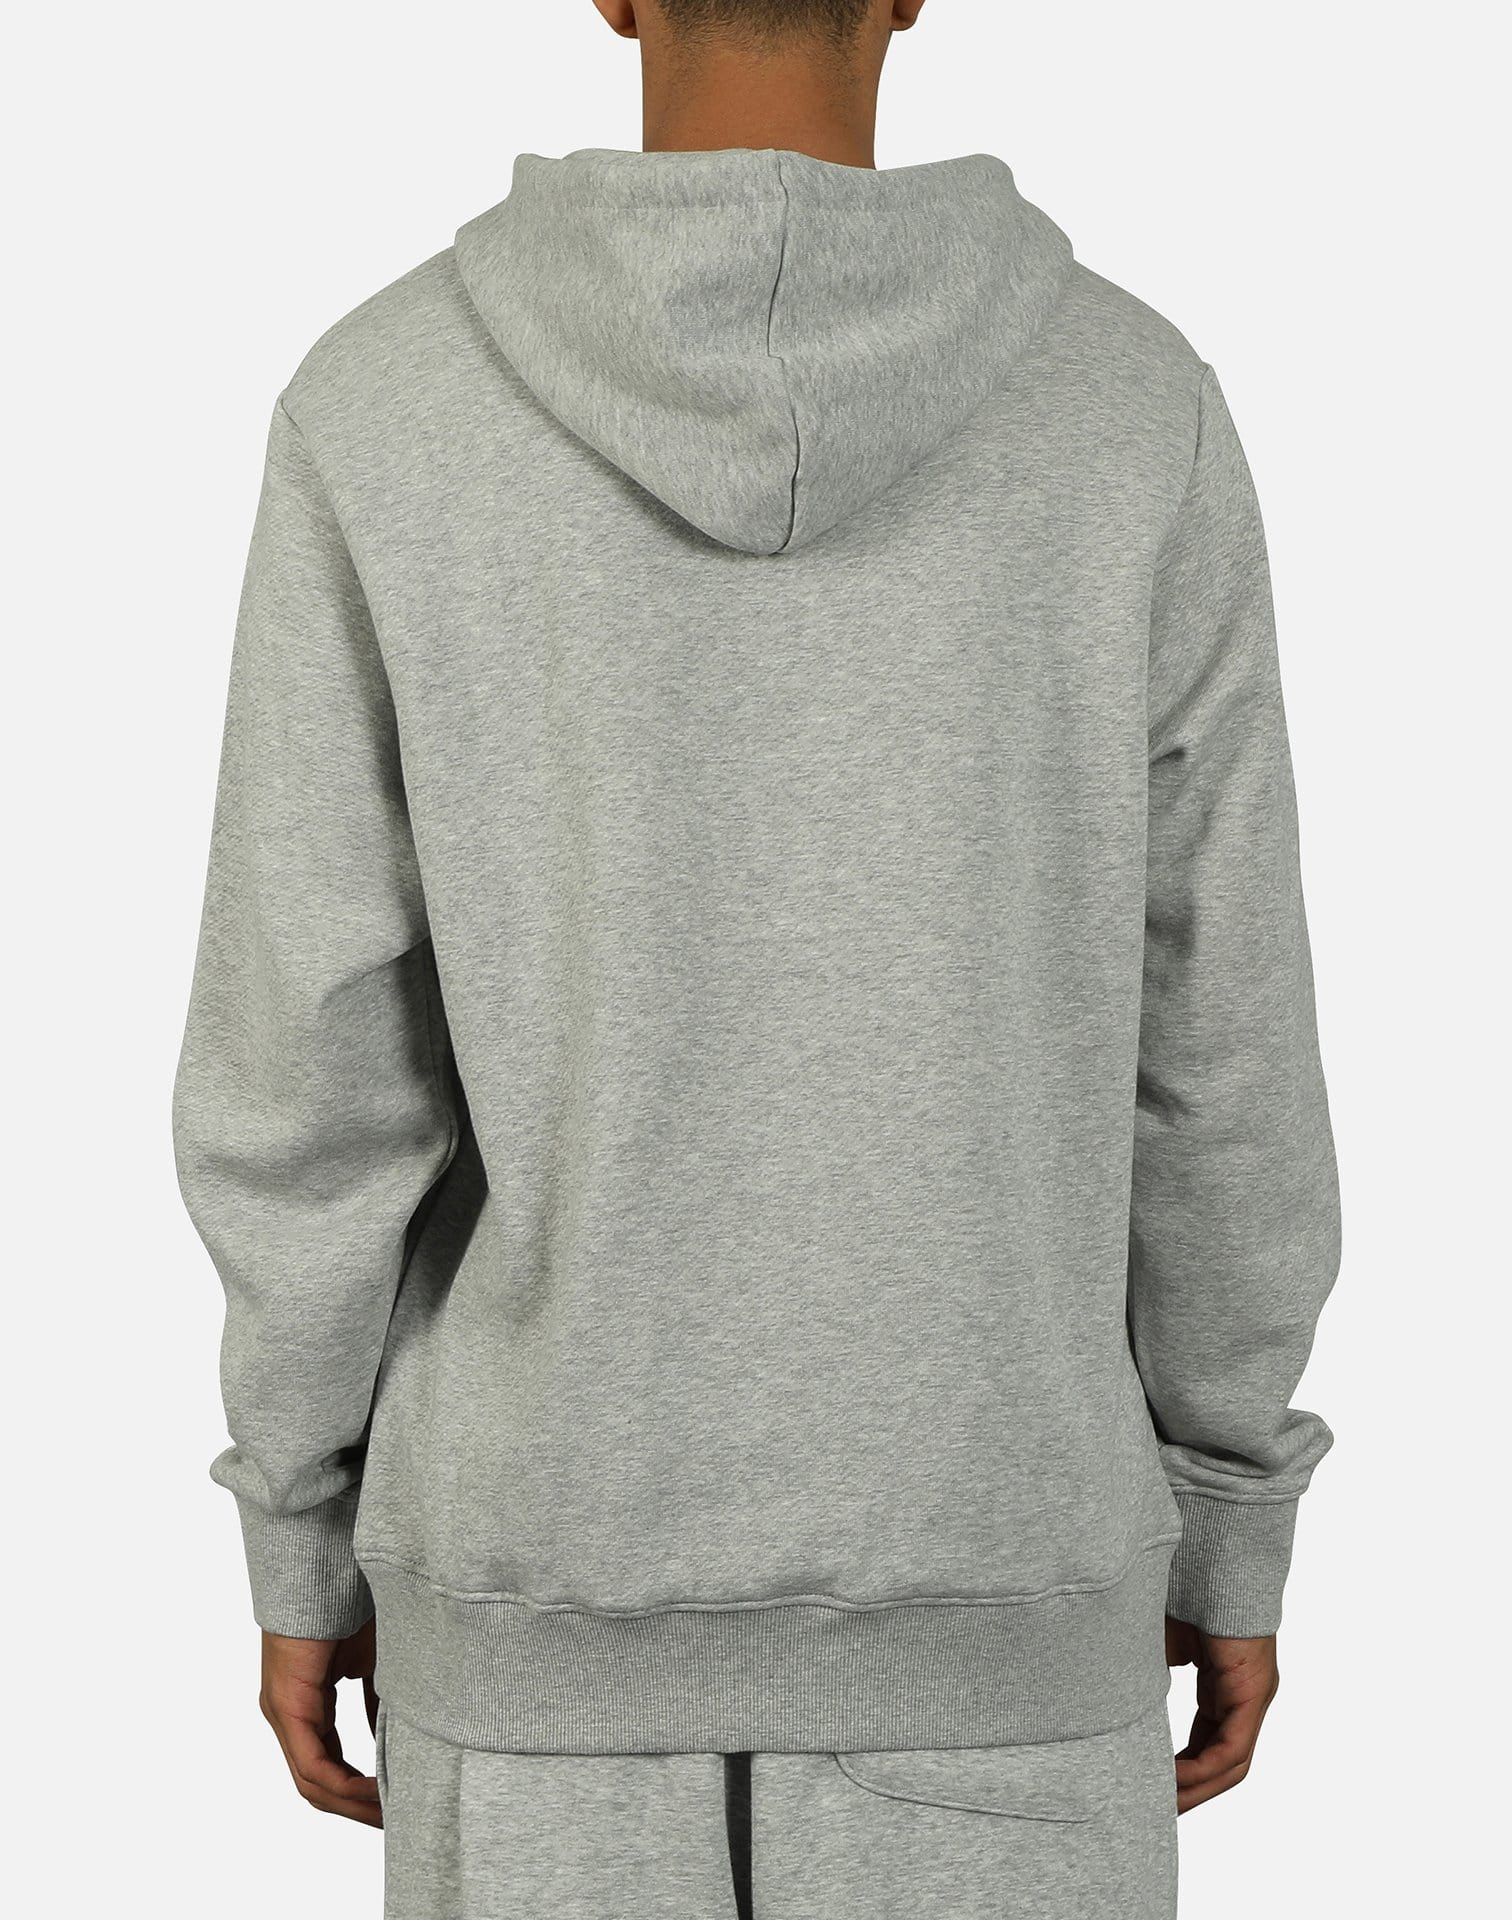 New Balance Men's Essentials Stacked Logo Pullover Hoodie